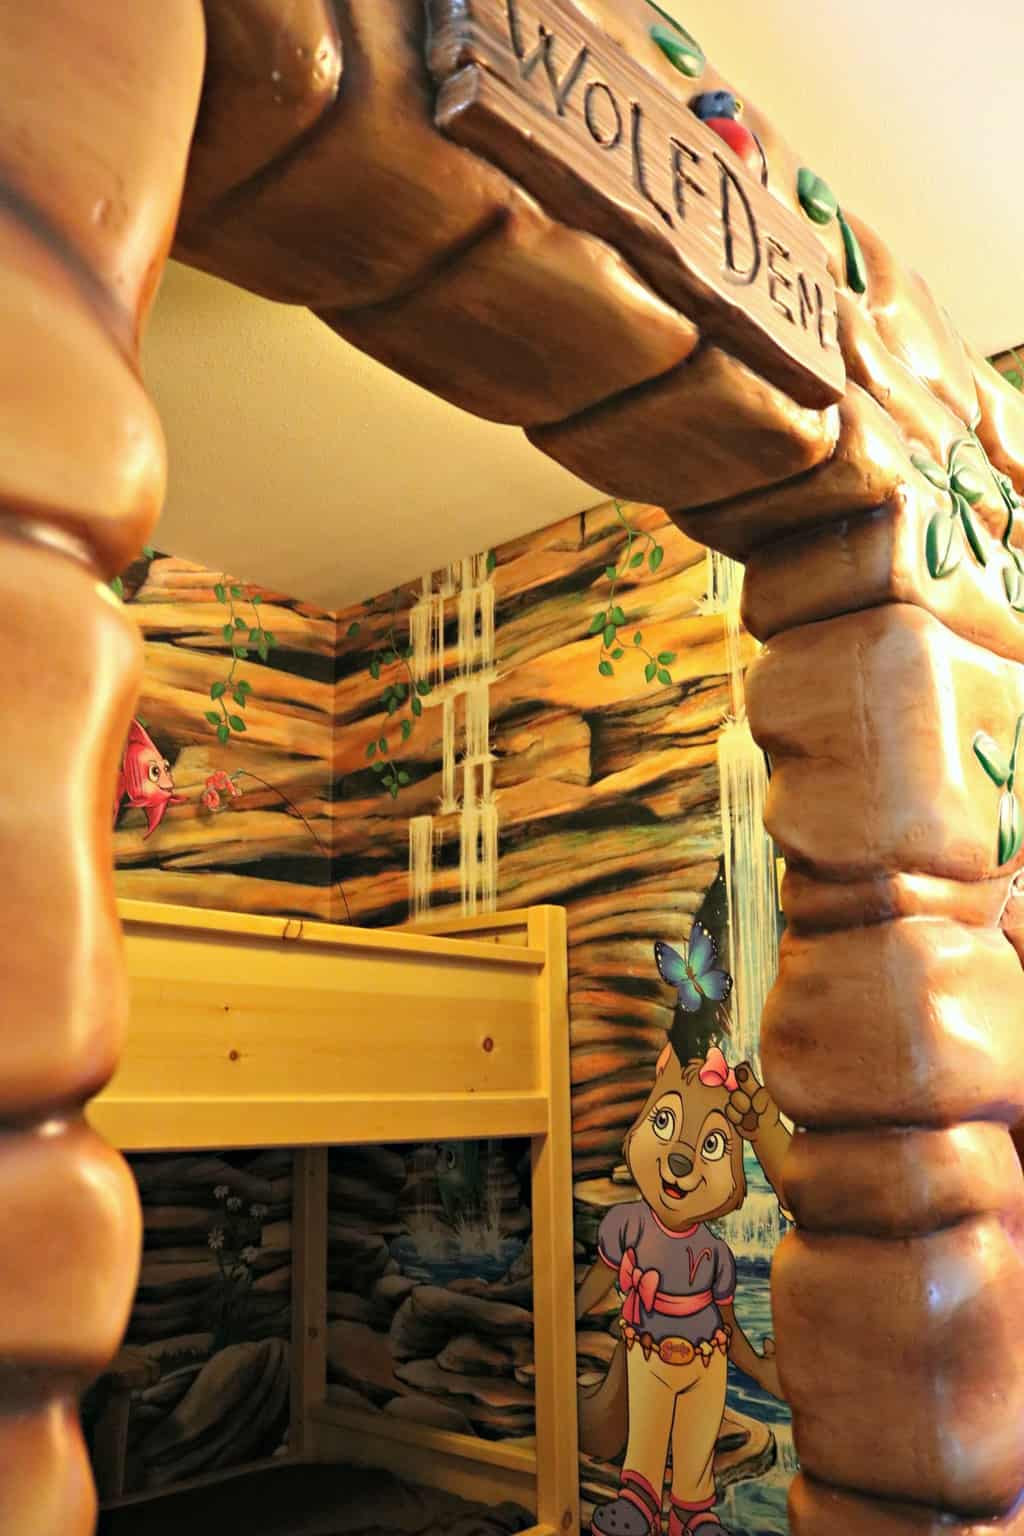 Discount Offers To Great Wolf Lodge Southern California - SoCal ...